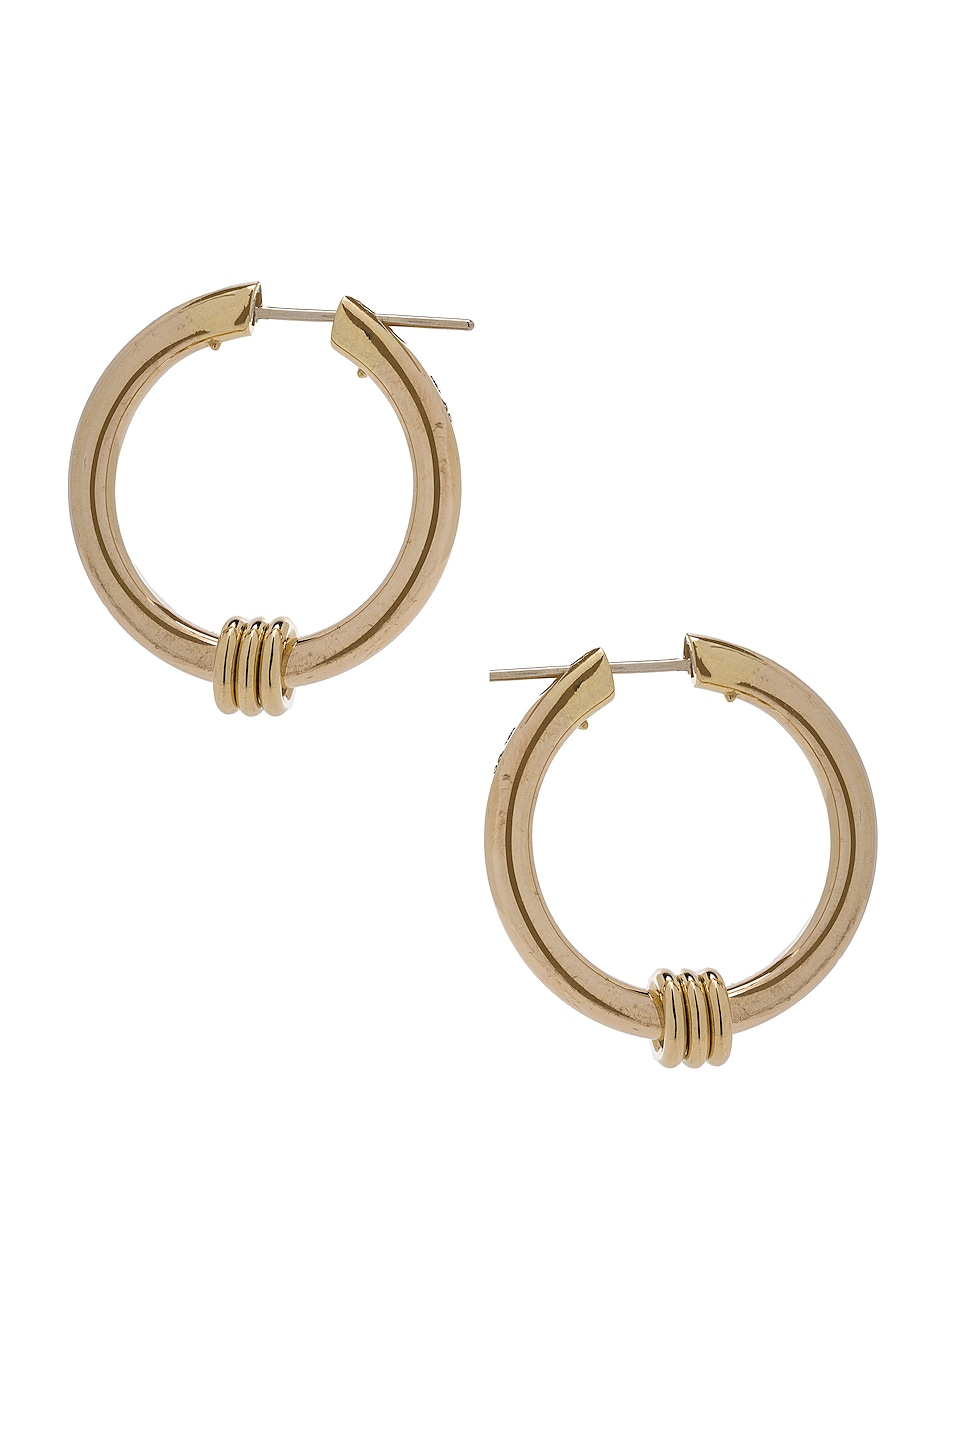 Image 1 of Spinelli Kilcollin Ursa Major Hoop Earrings in 18K Yellow Gold